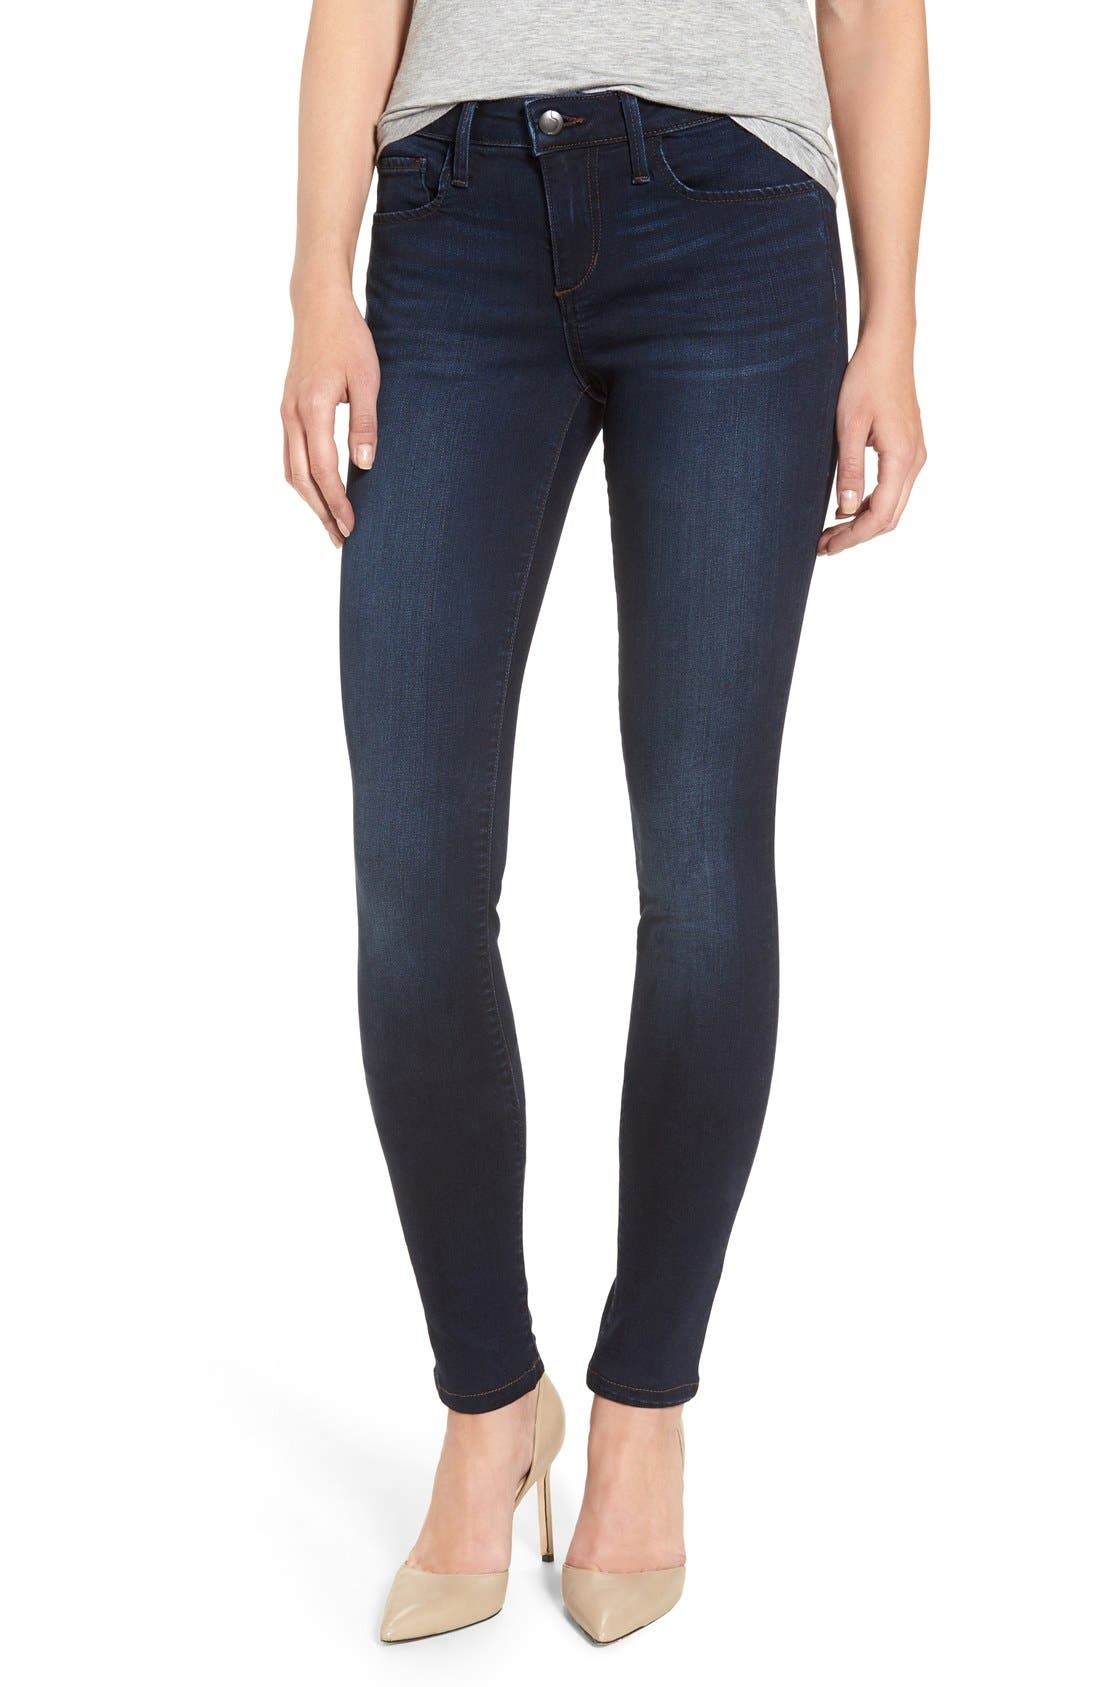 'Flawless - Twiggy' Skinny Jeans,                             Main thumbnail 1, color,                             400